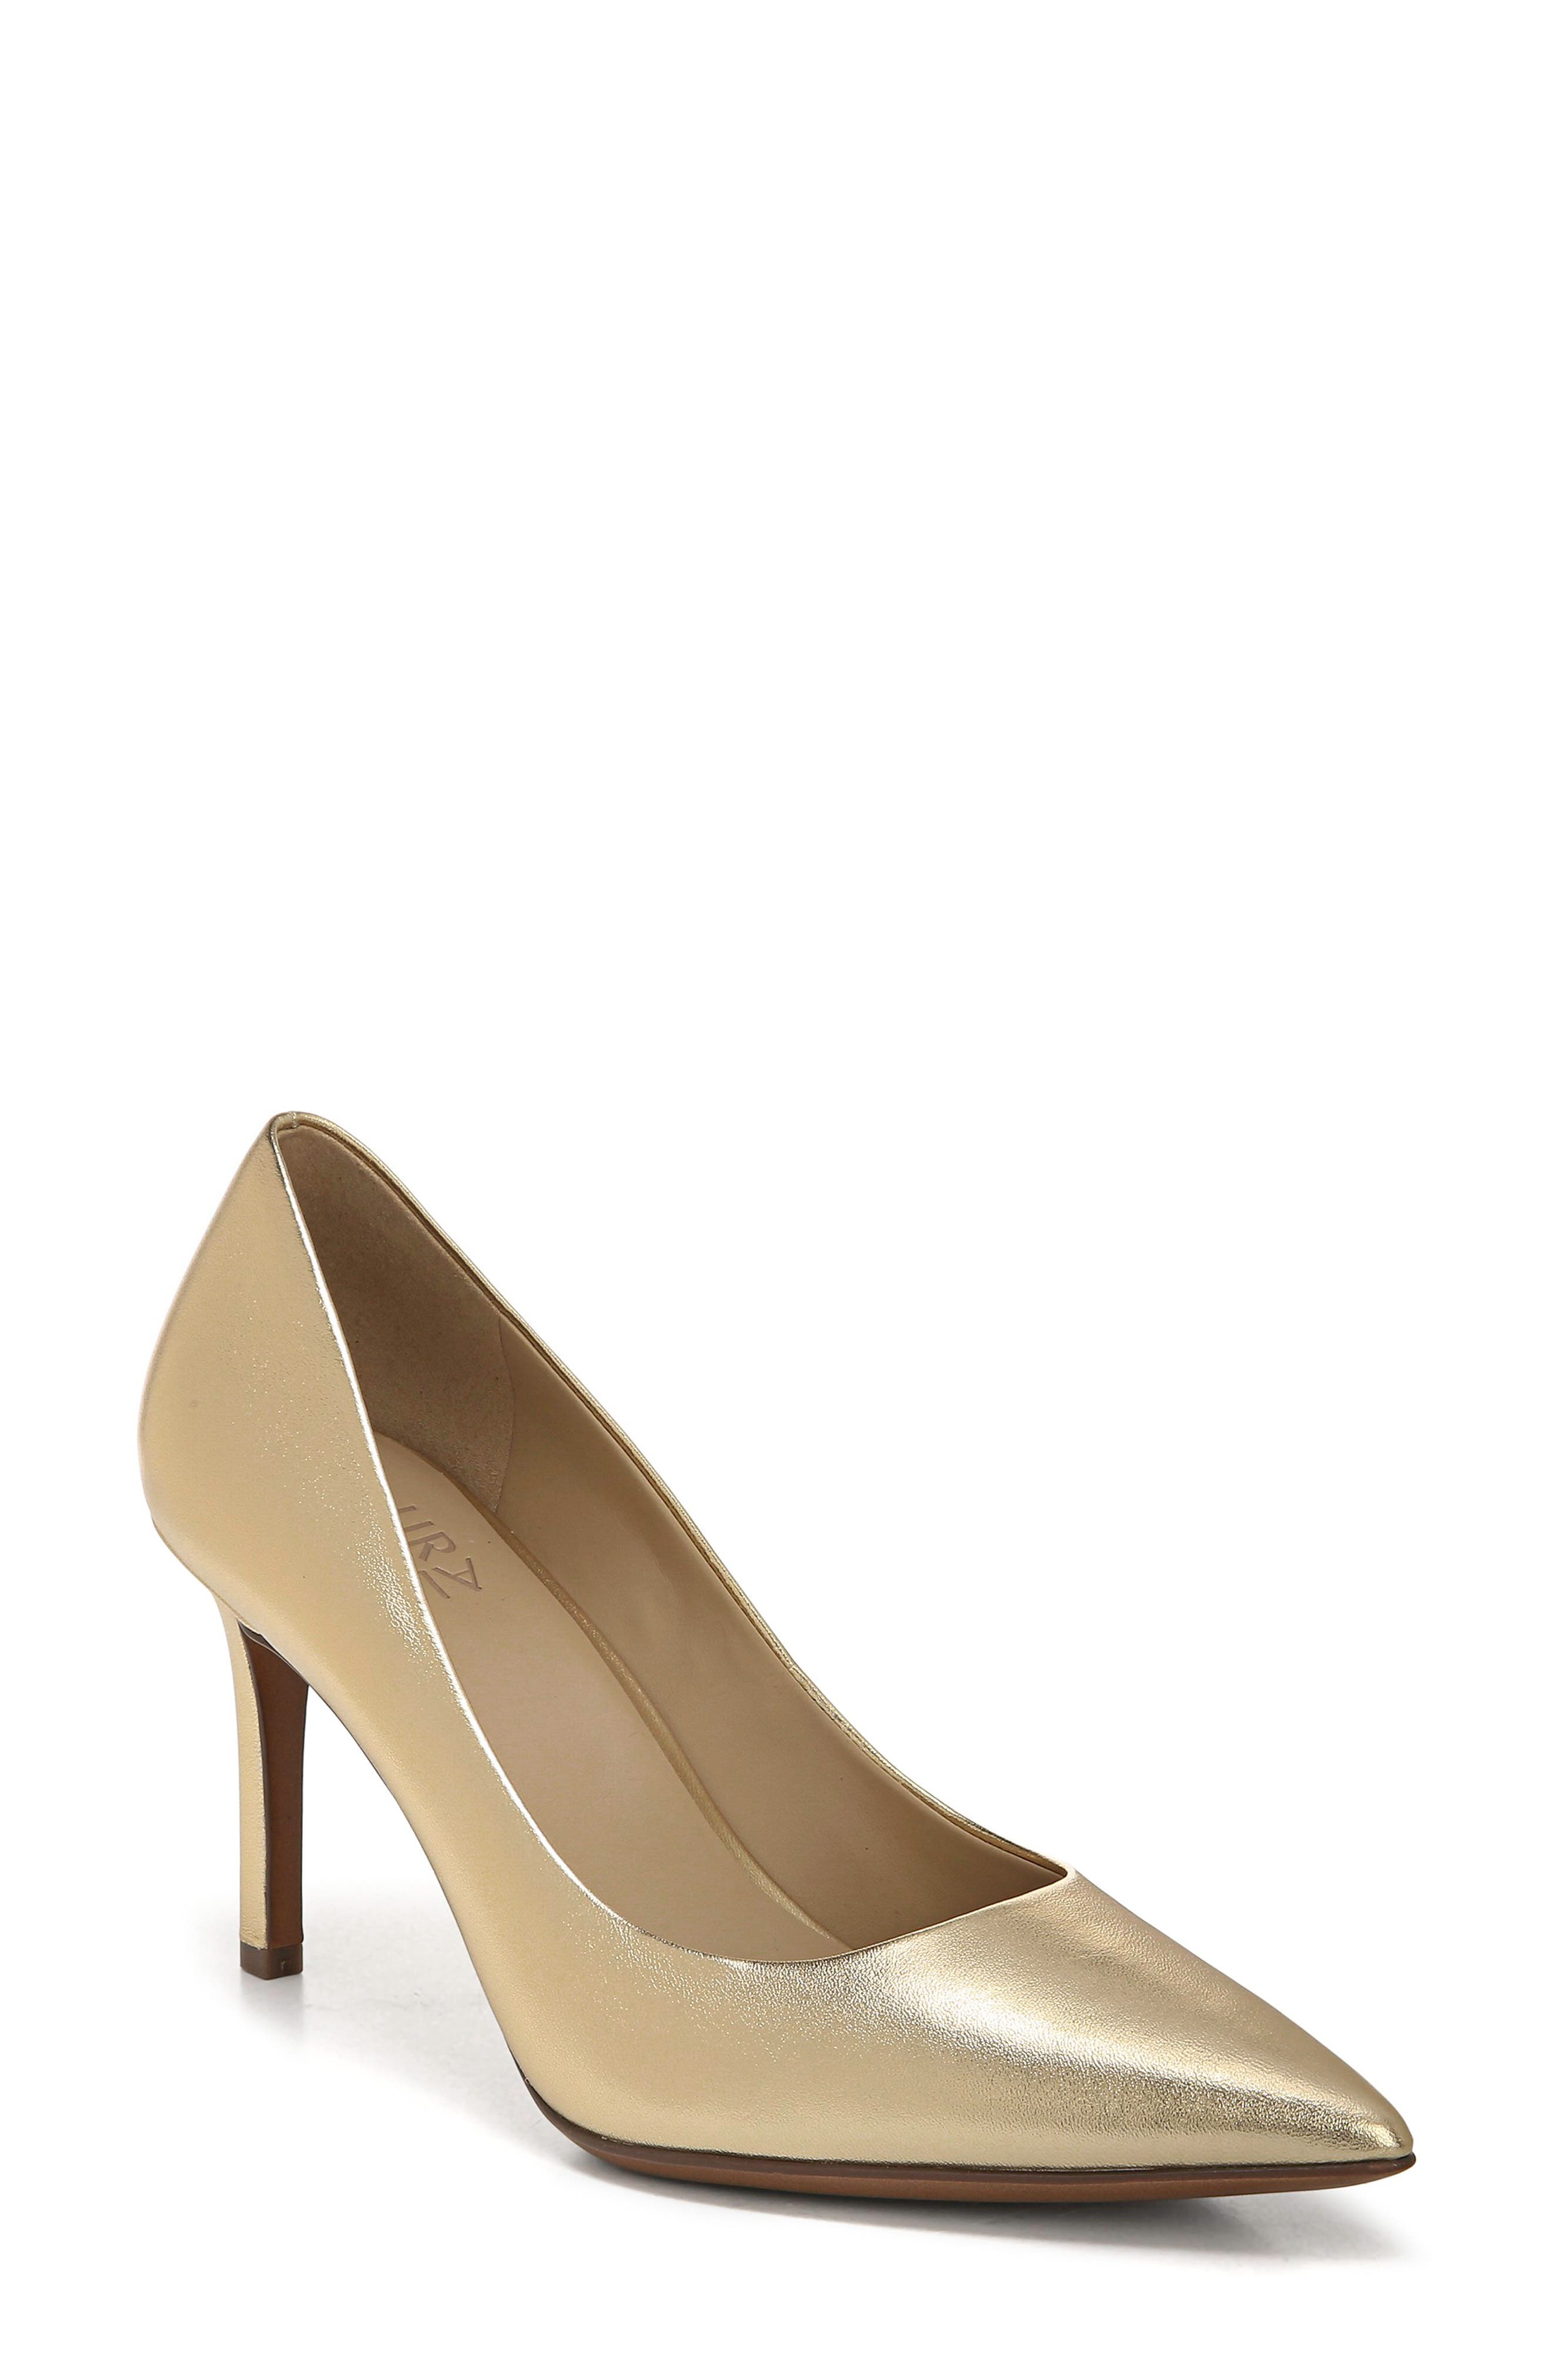 Naturalizer Anna Pump, Metallic